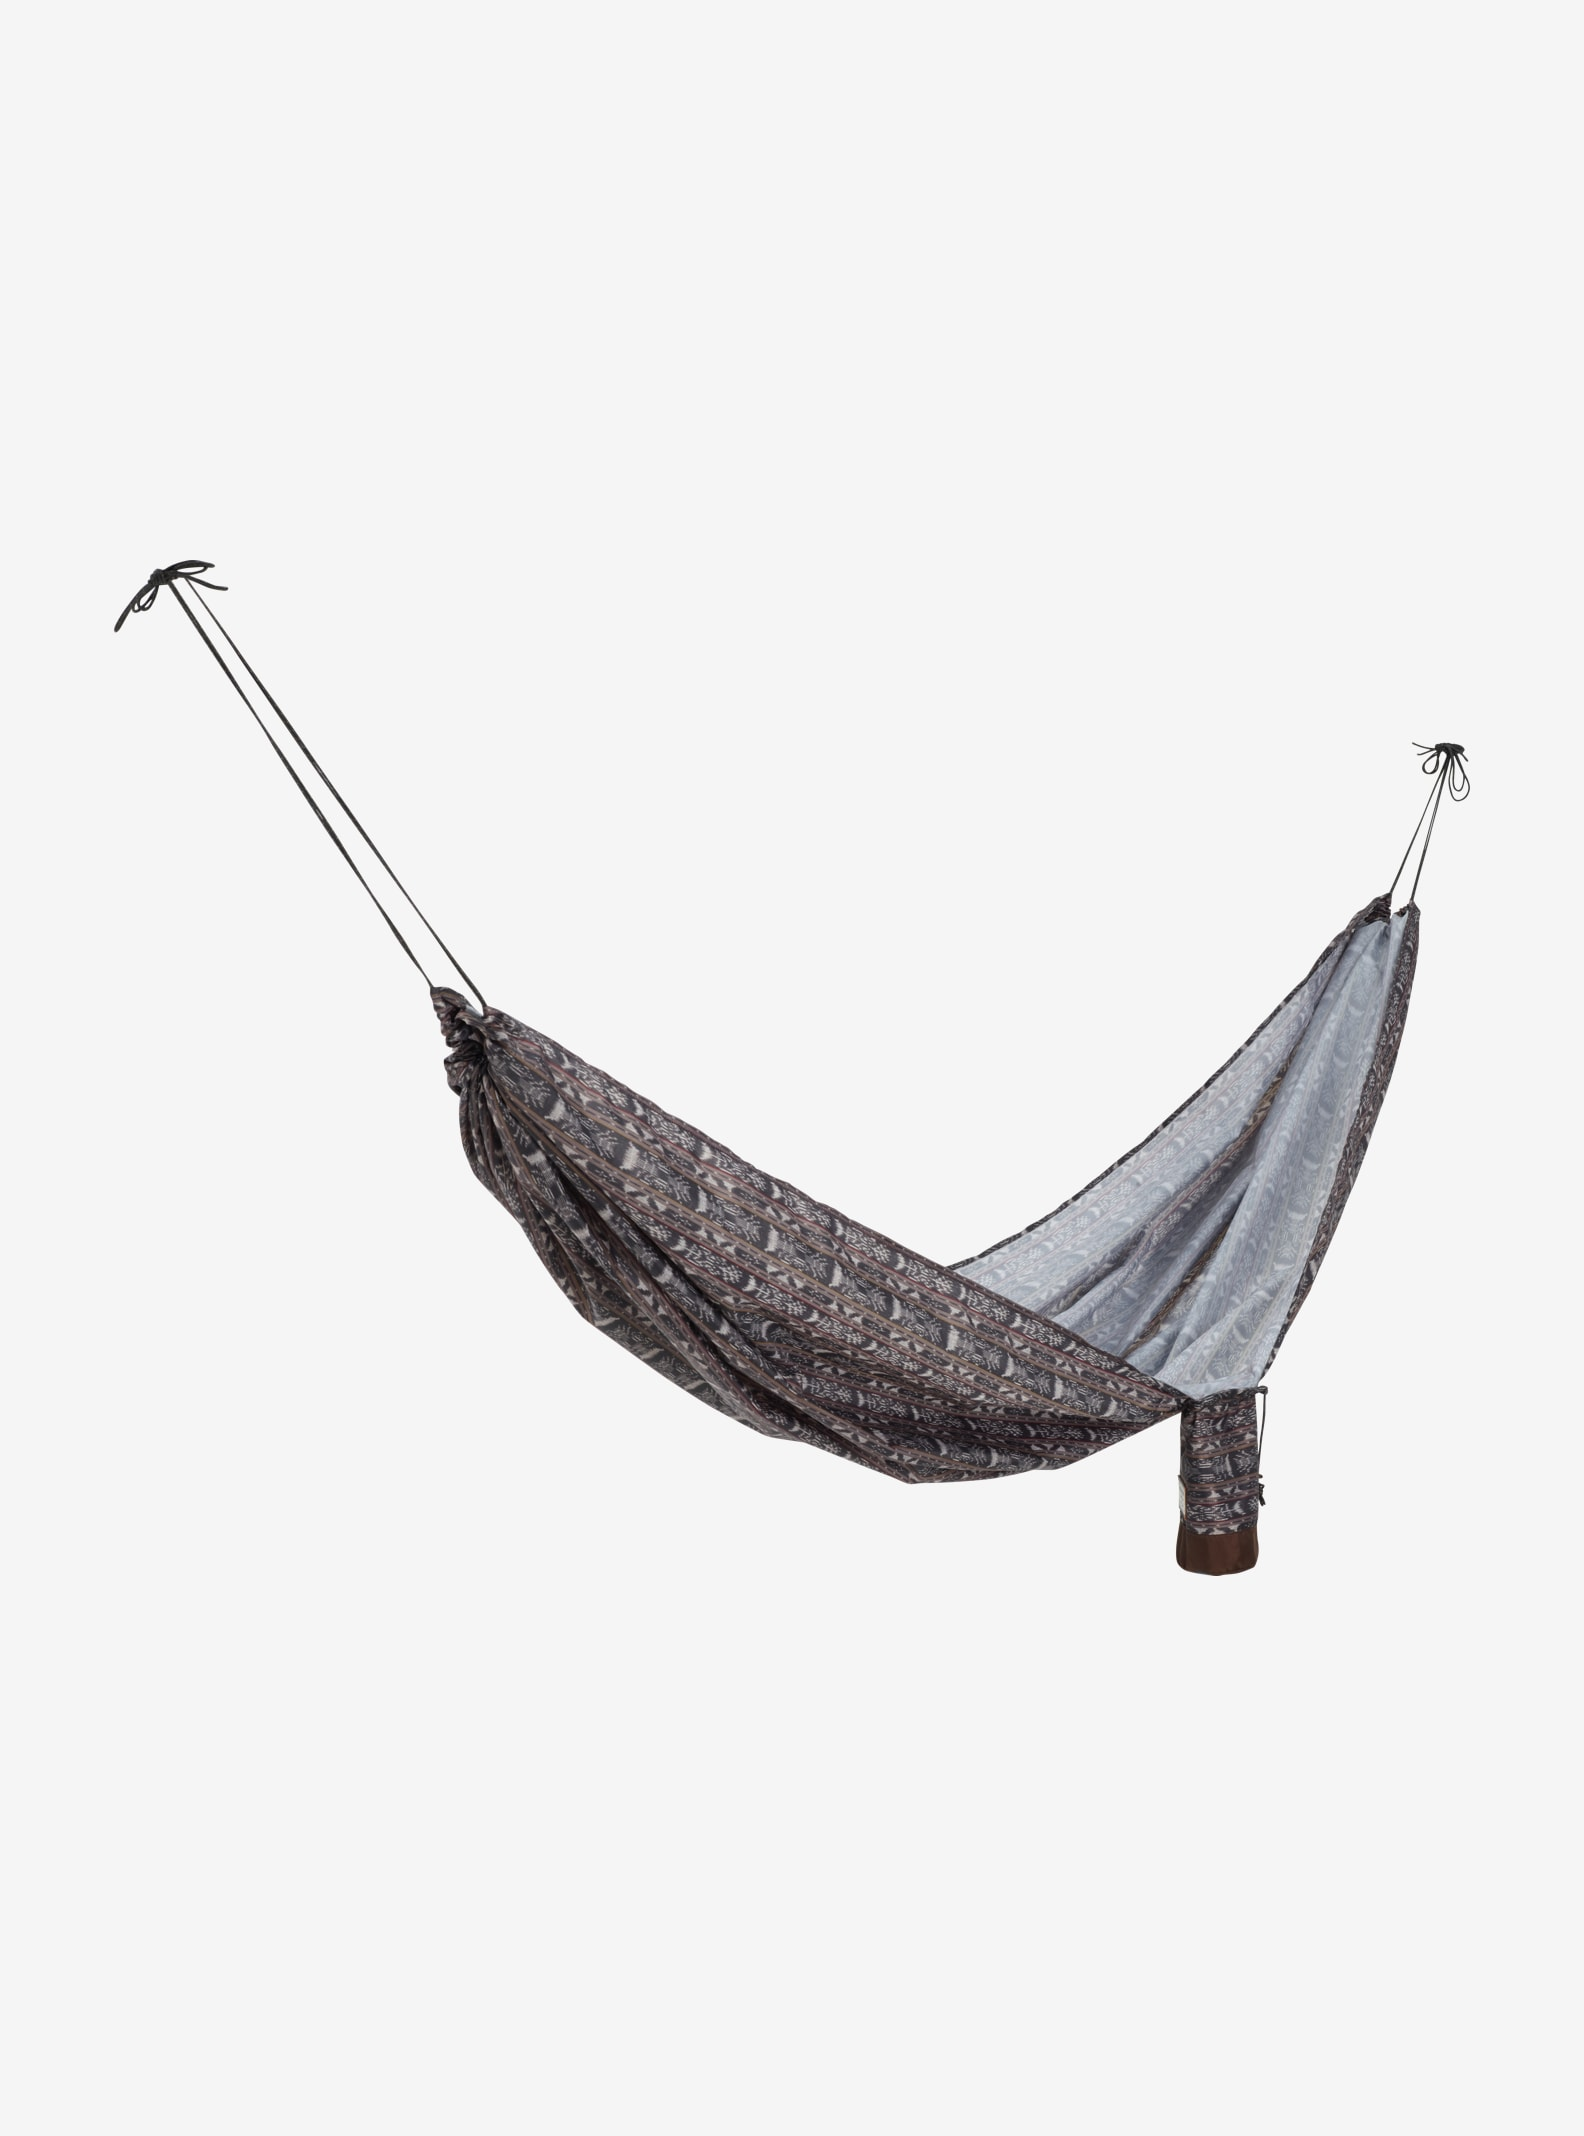 Burton Honey-Baked Hammock shown in Guatikat Print